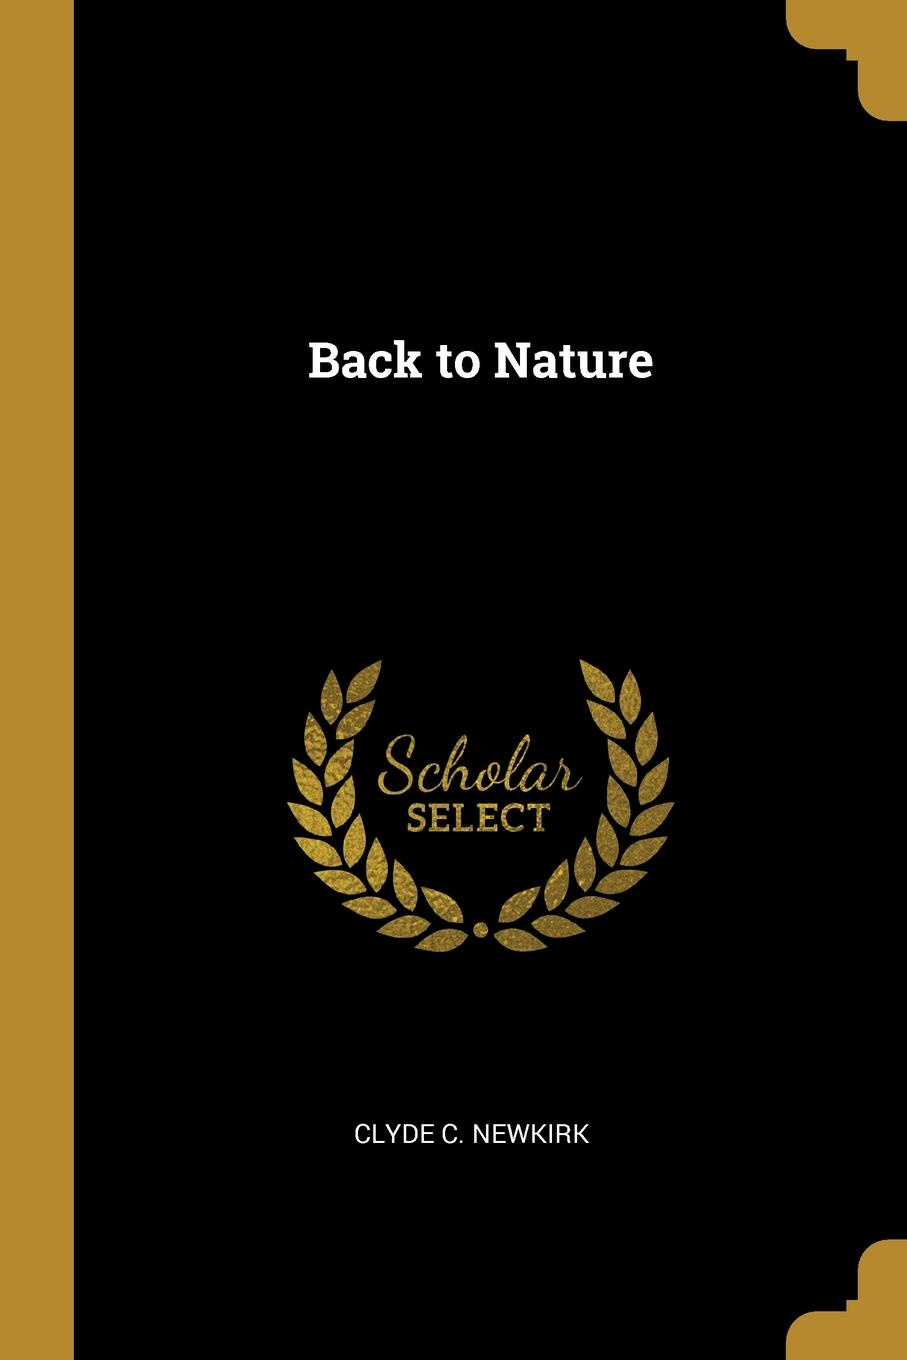 Back to Nature. Clyde C. Newkirk